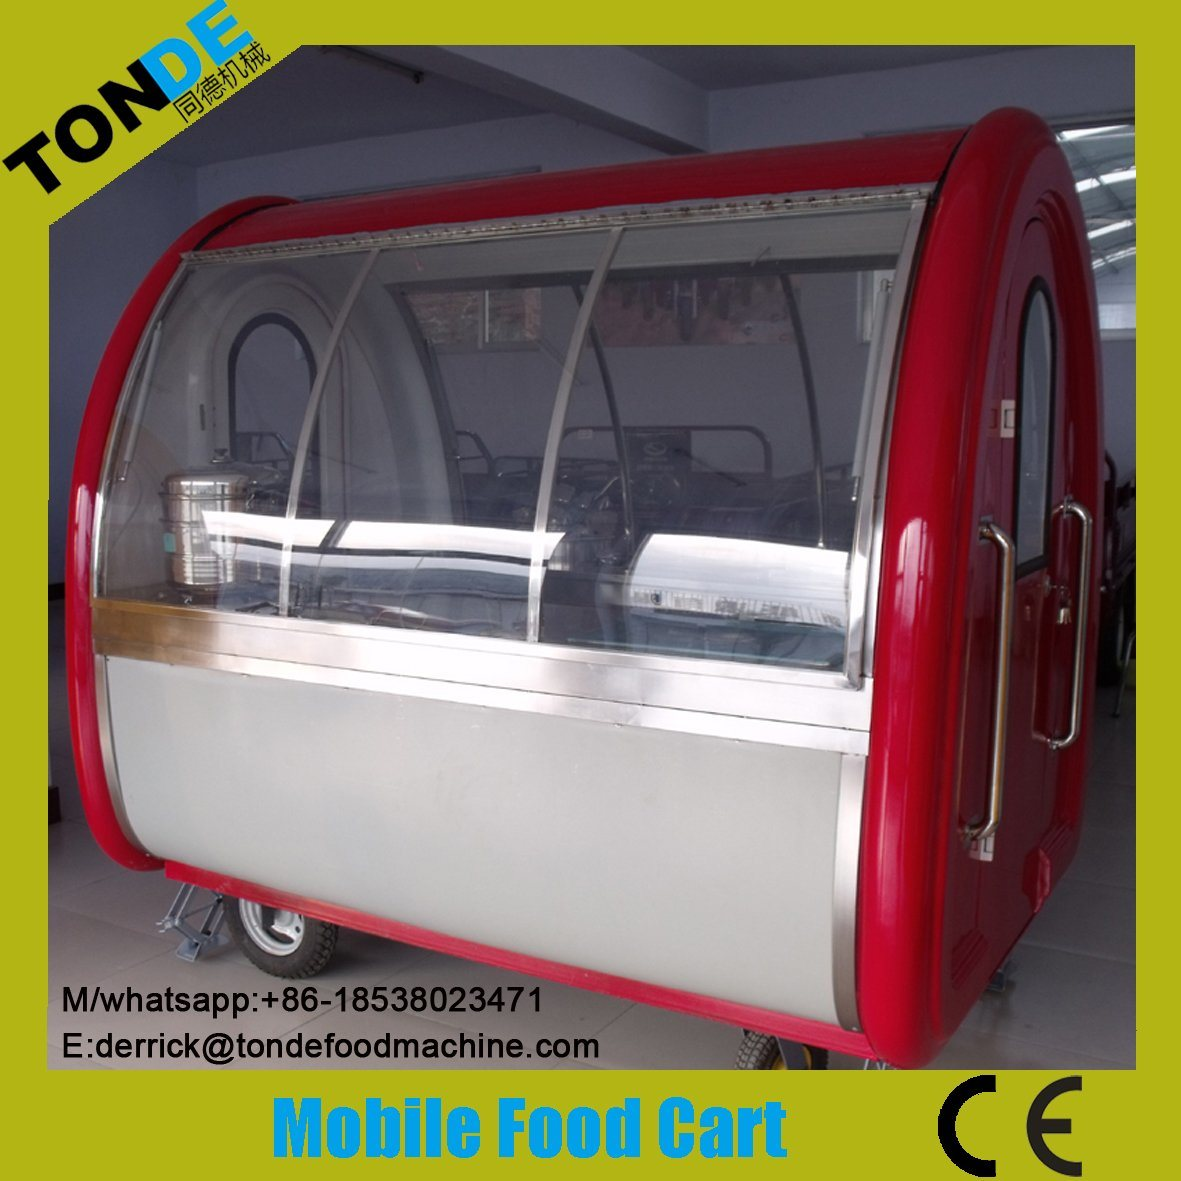 Fiberglass Mobile Food Trailer Supplier